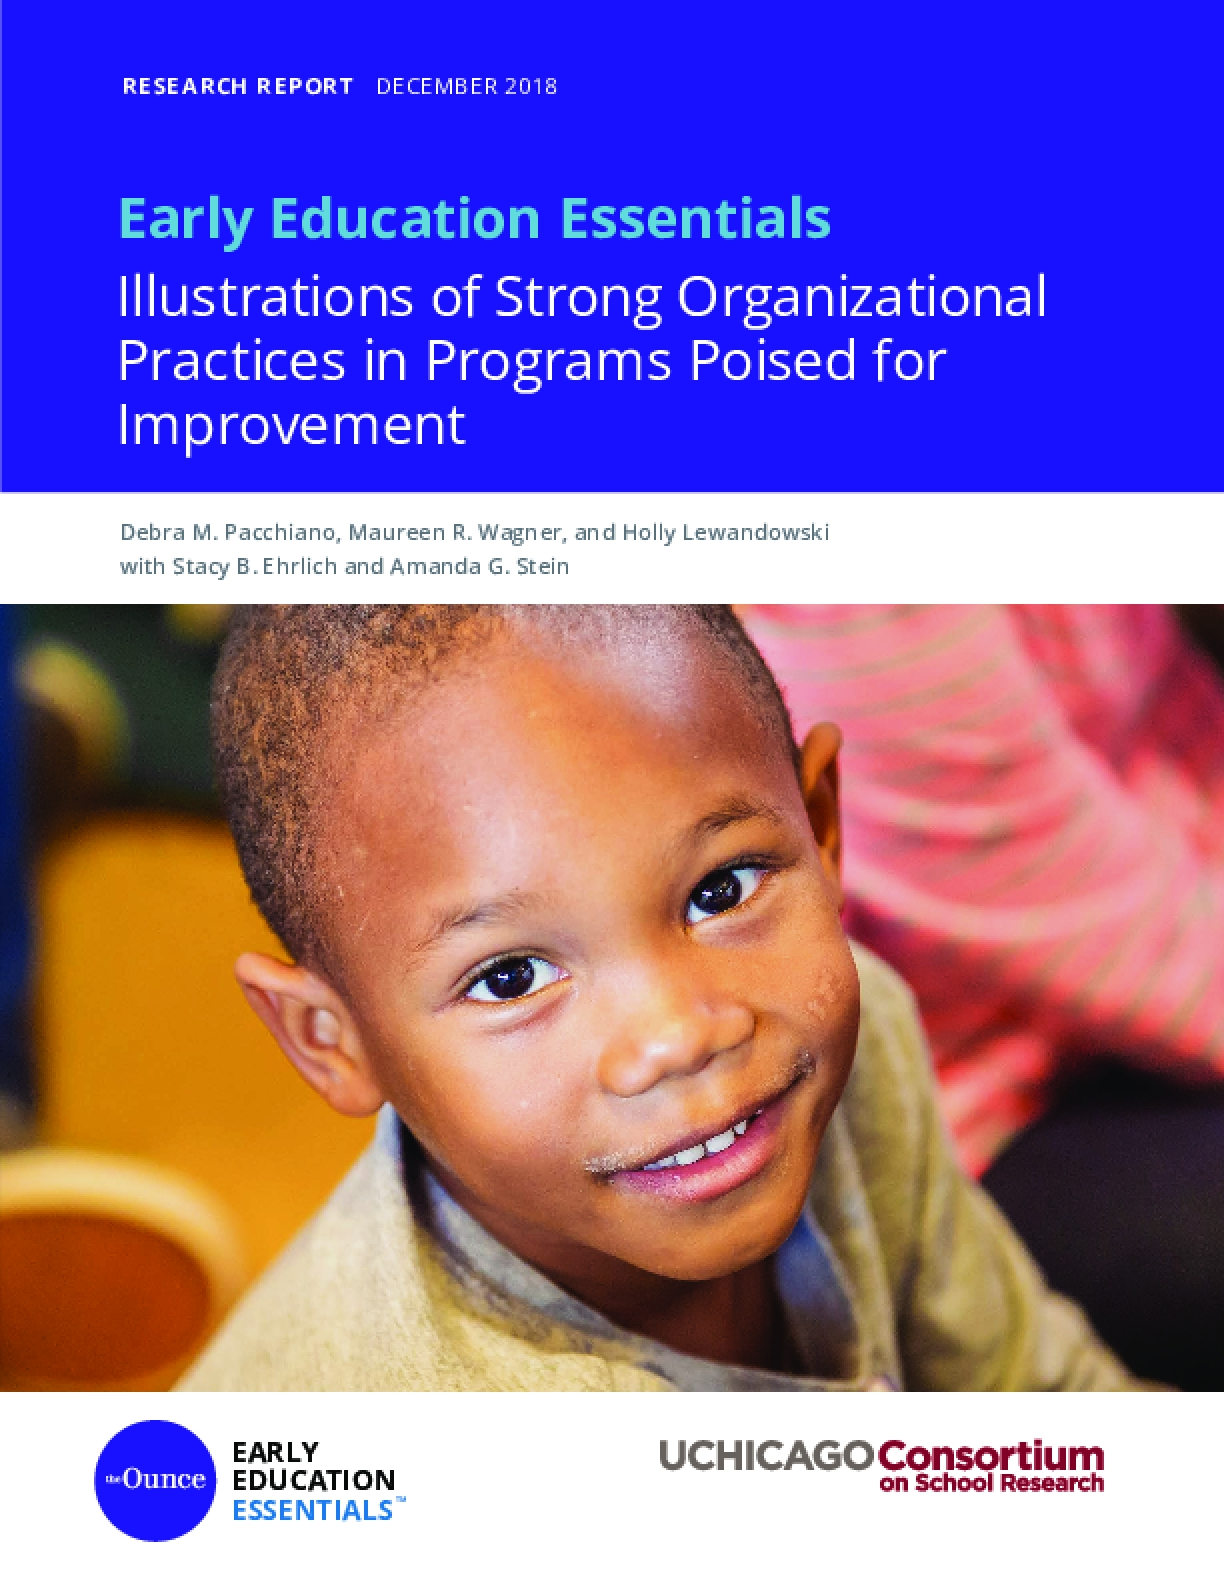 Early Education Essentials Illustrations of Strong Organizational Practices in Programs Poised for Improvement